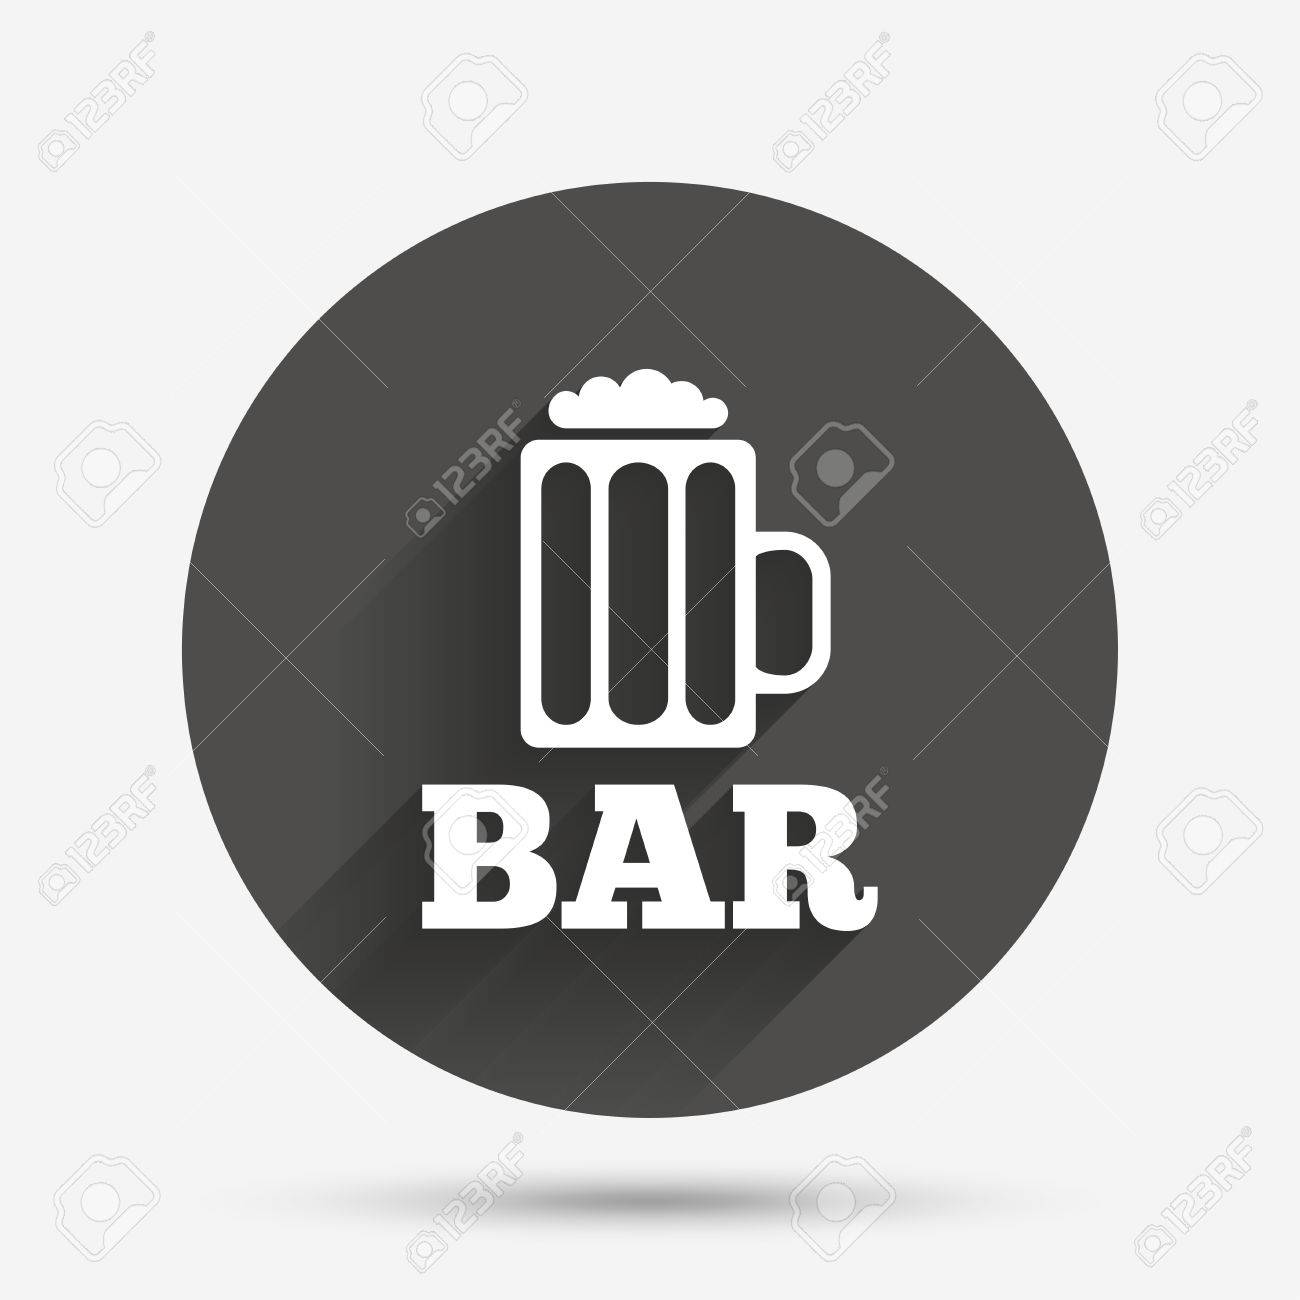 Image result for simbolo bar